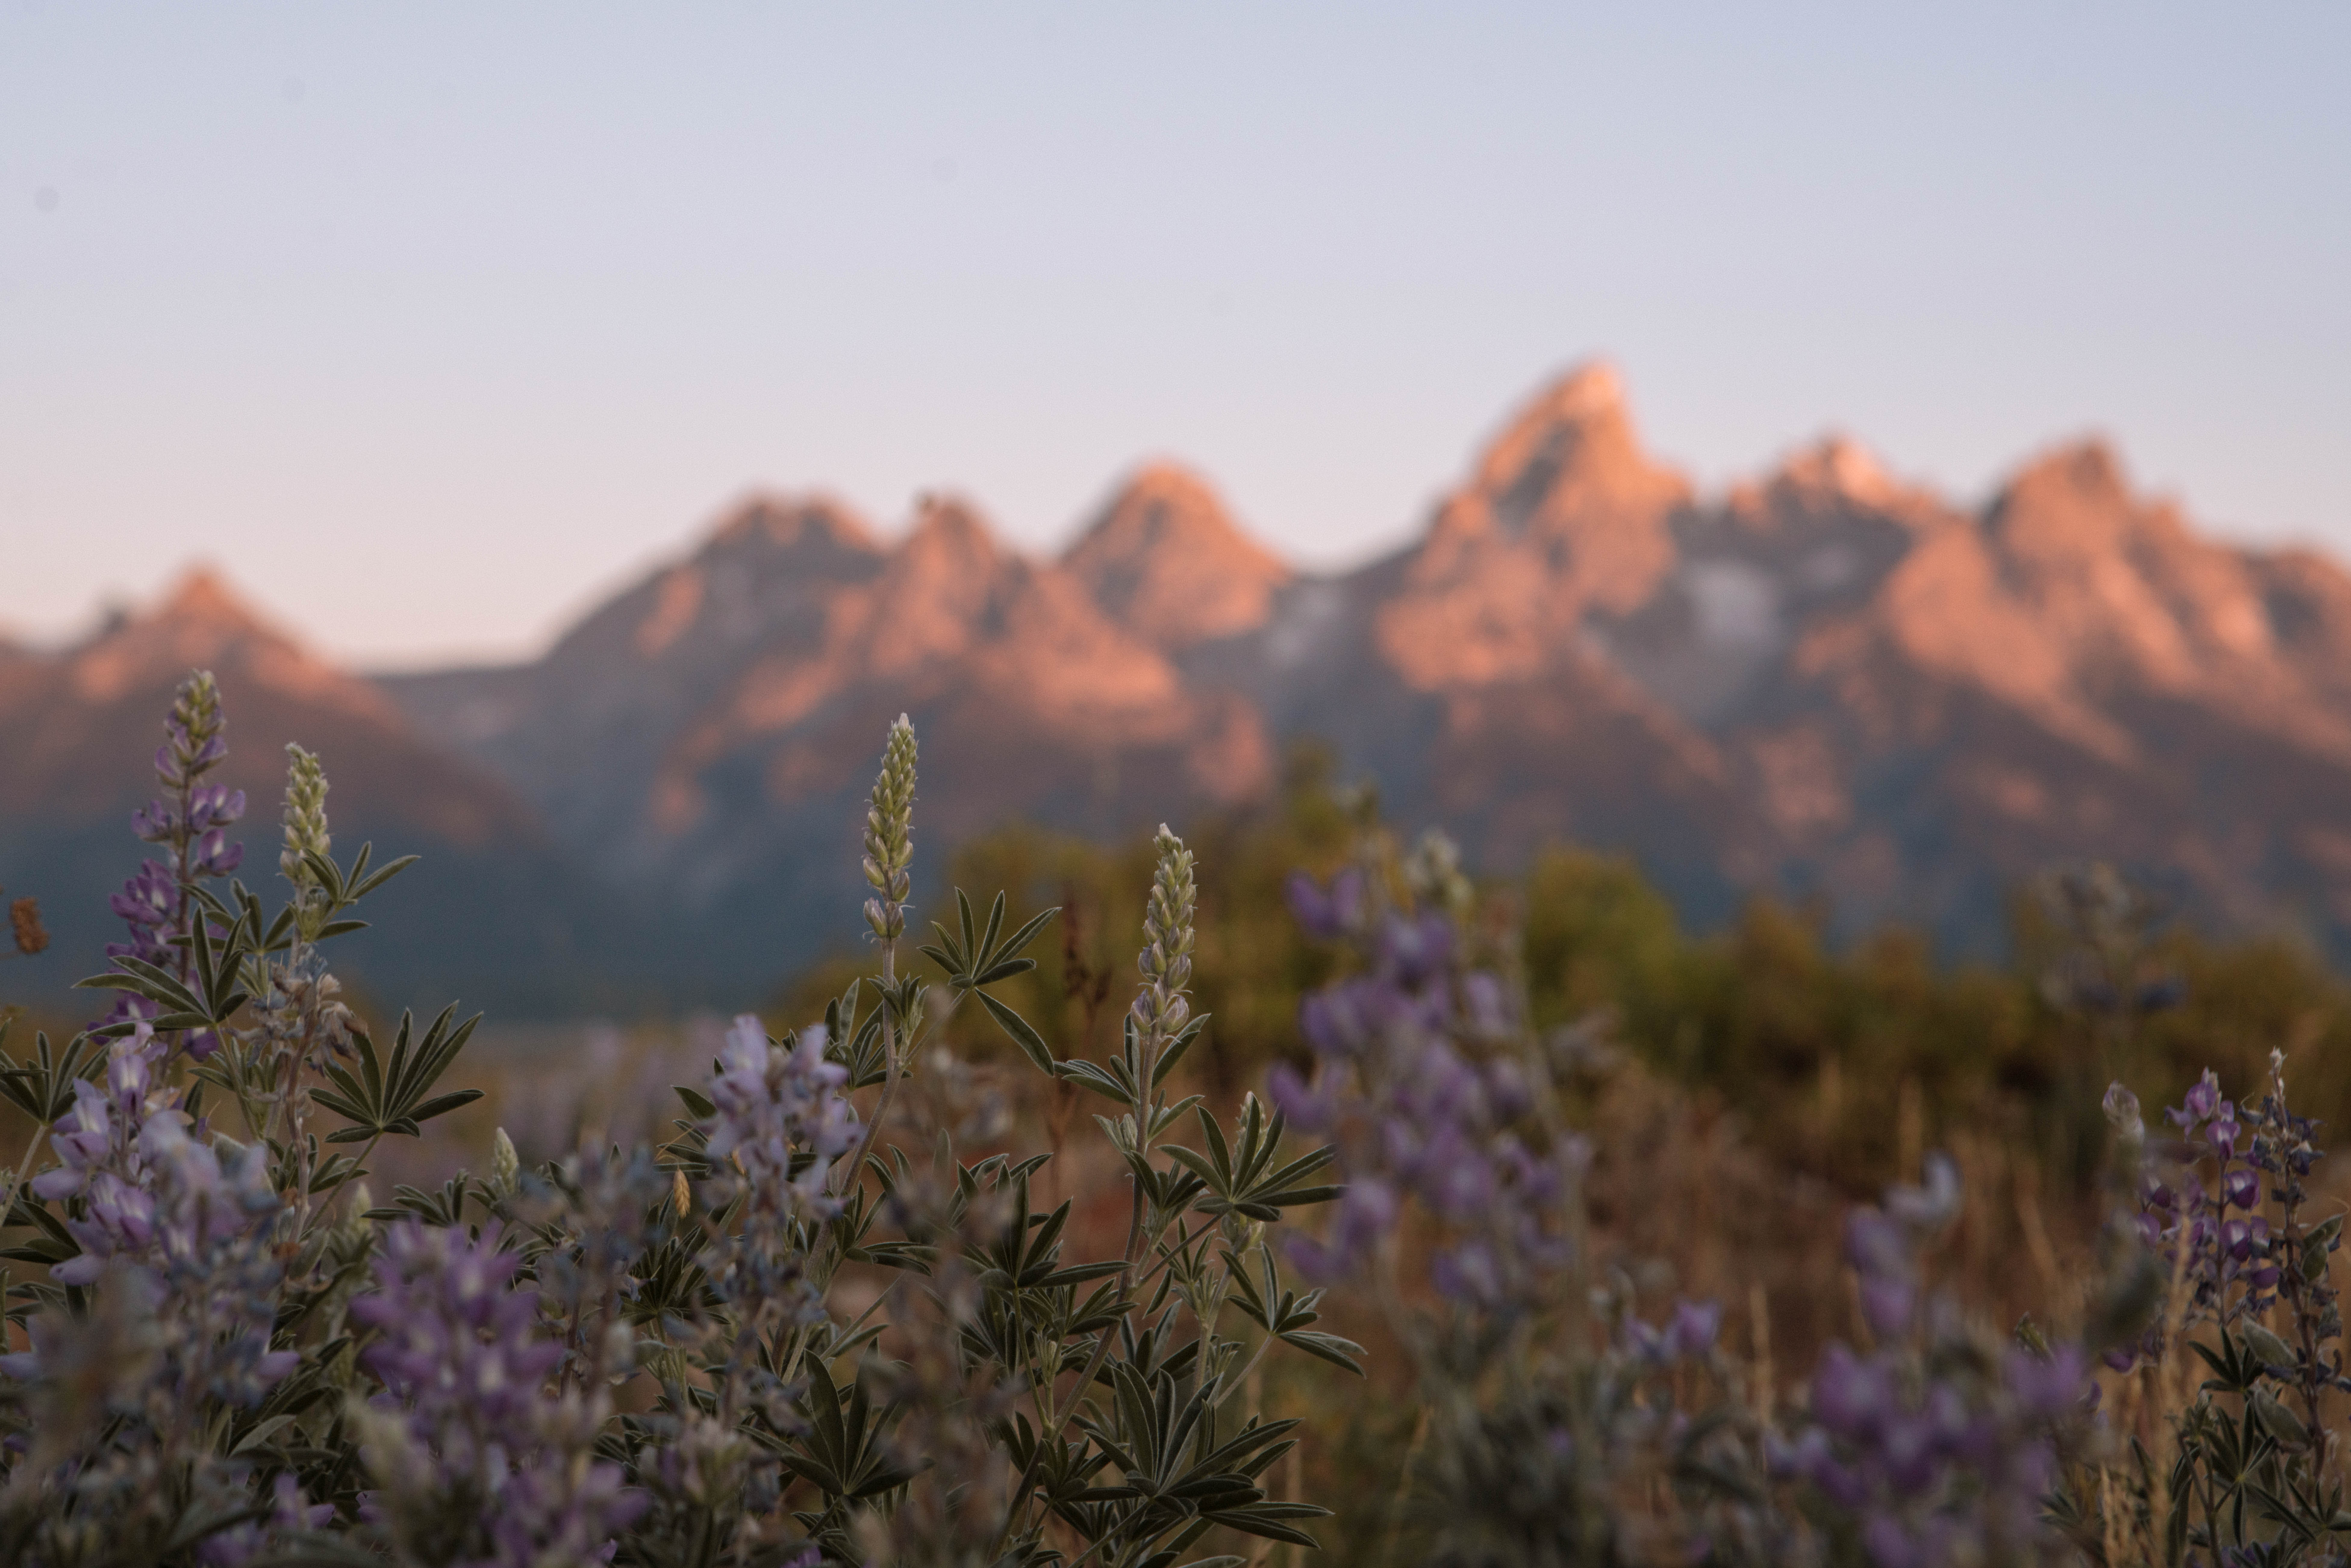 Summer in Jackson, WY with wildflowers before the Tetons